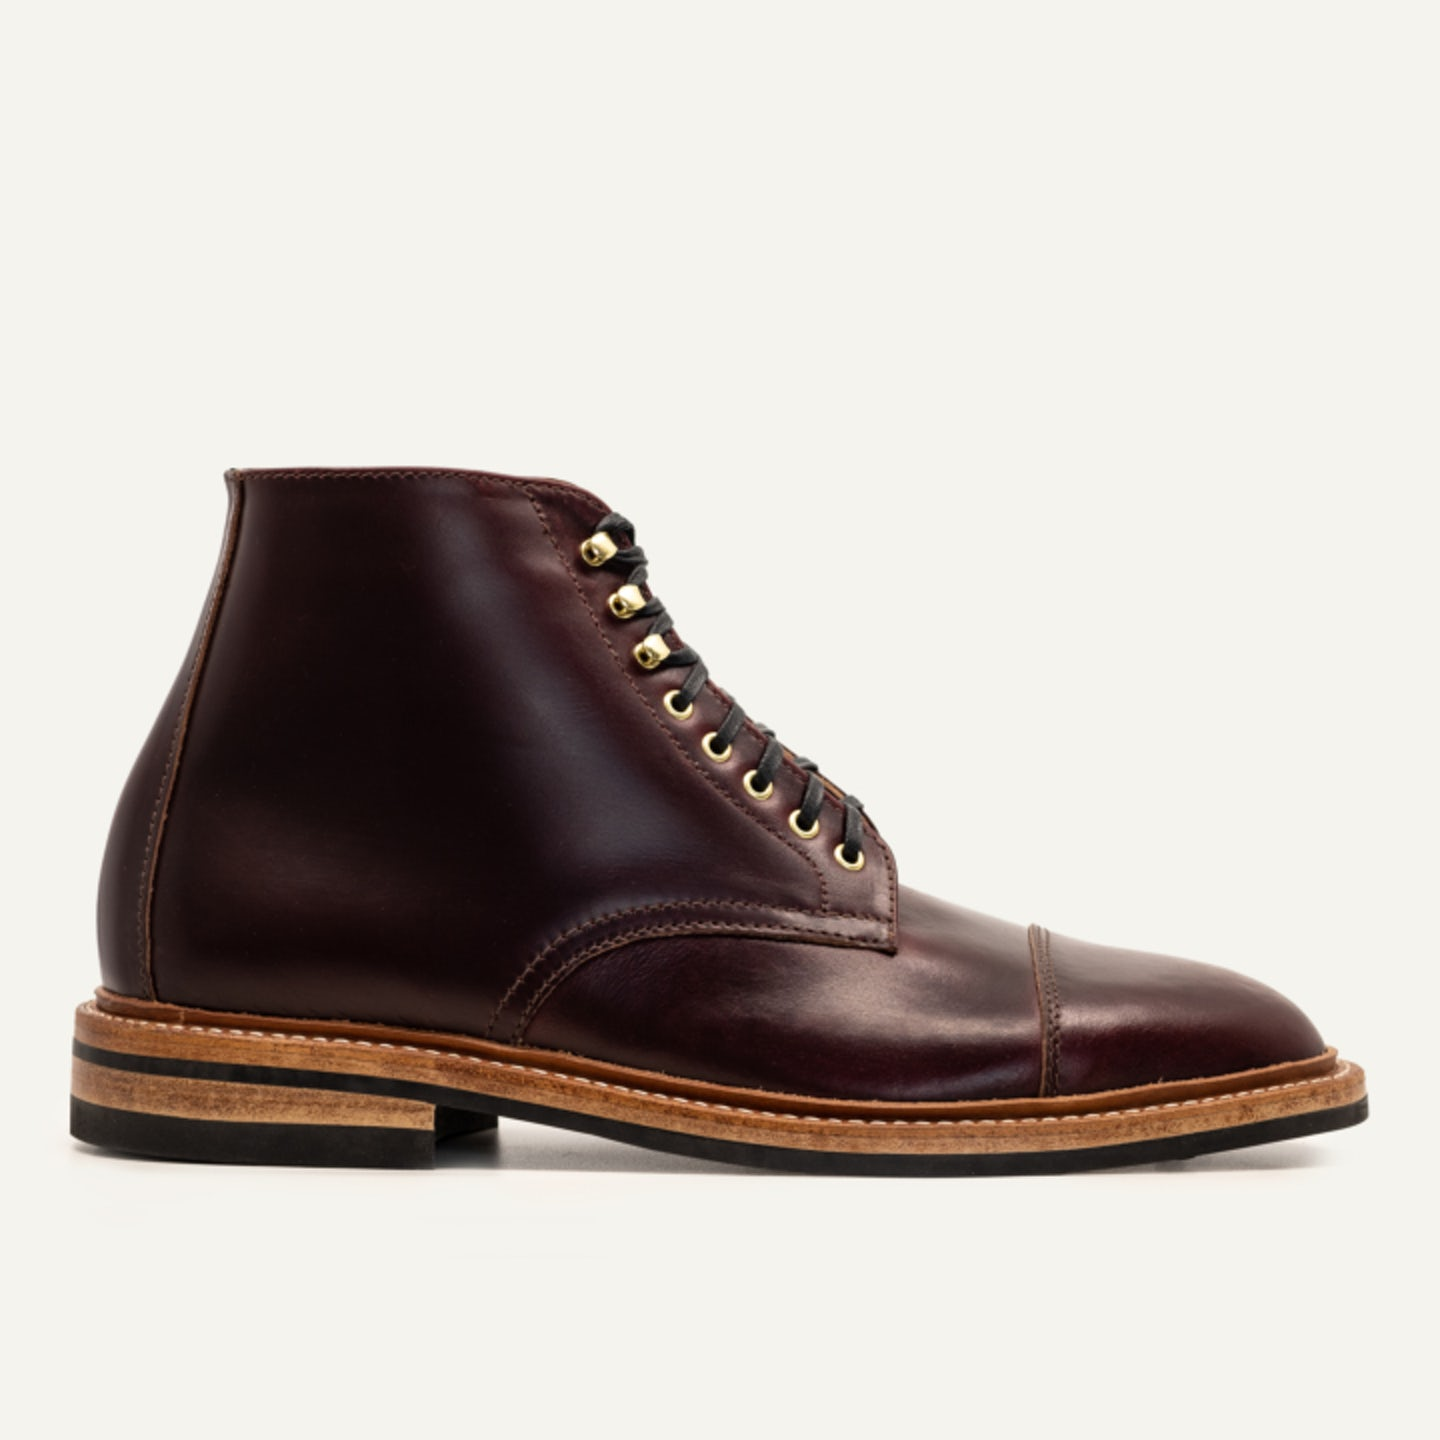 Cap-Toe Lakeshore Boot - Color 8 Chromexcel - Dainite Sole - Made in U.S.A. by Oak Street Bootmakers - View 1